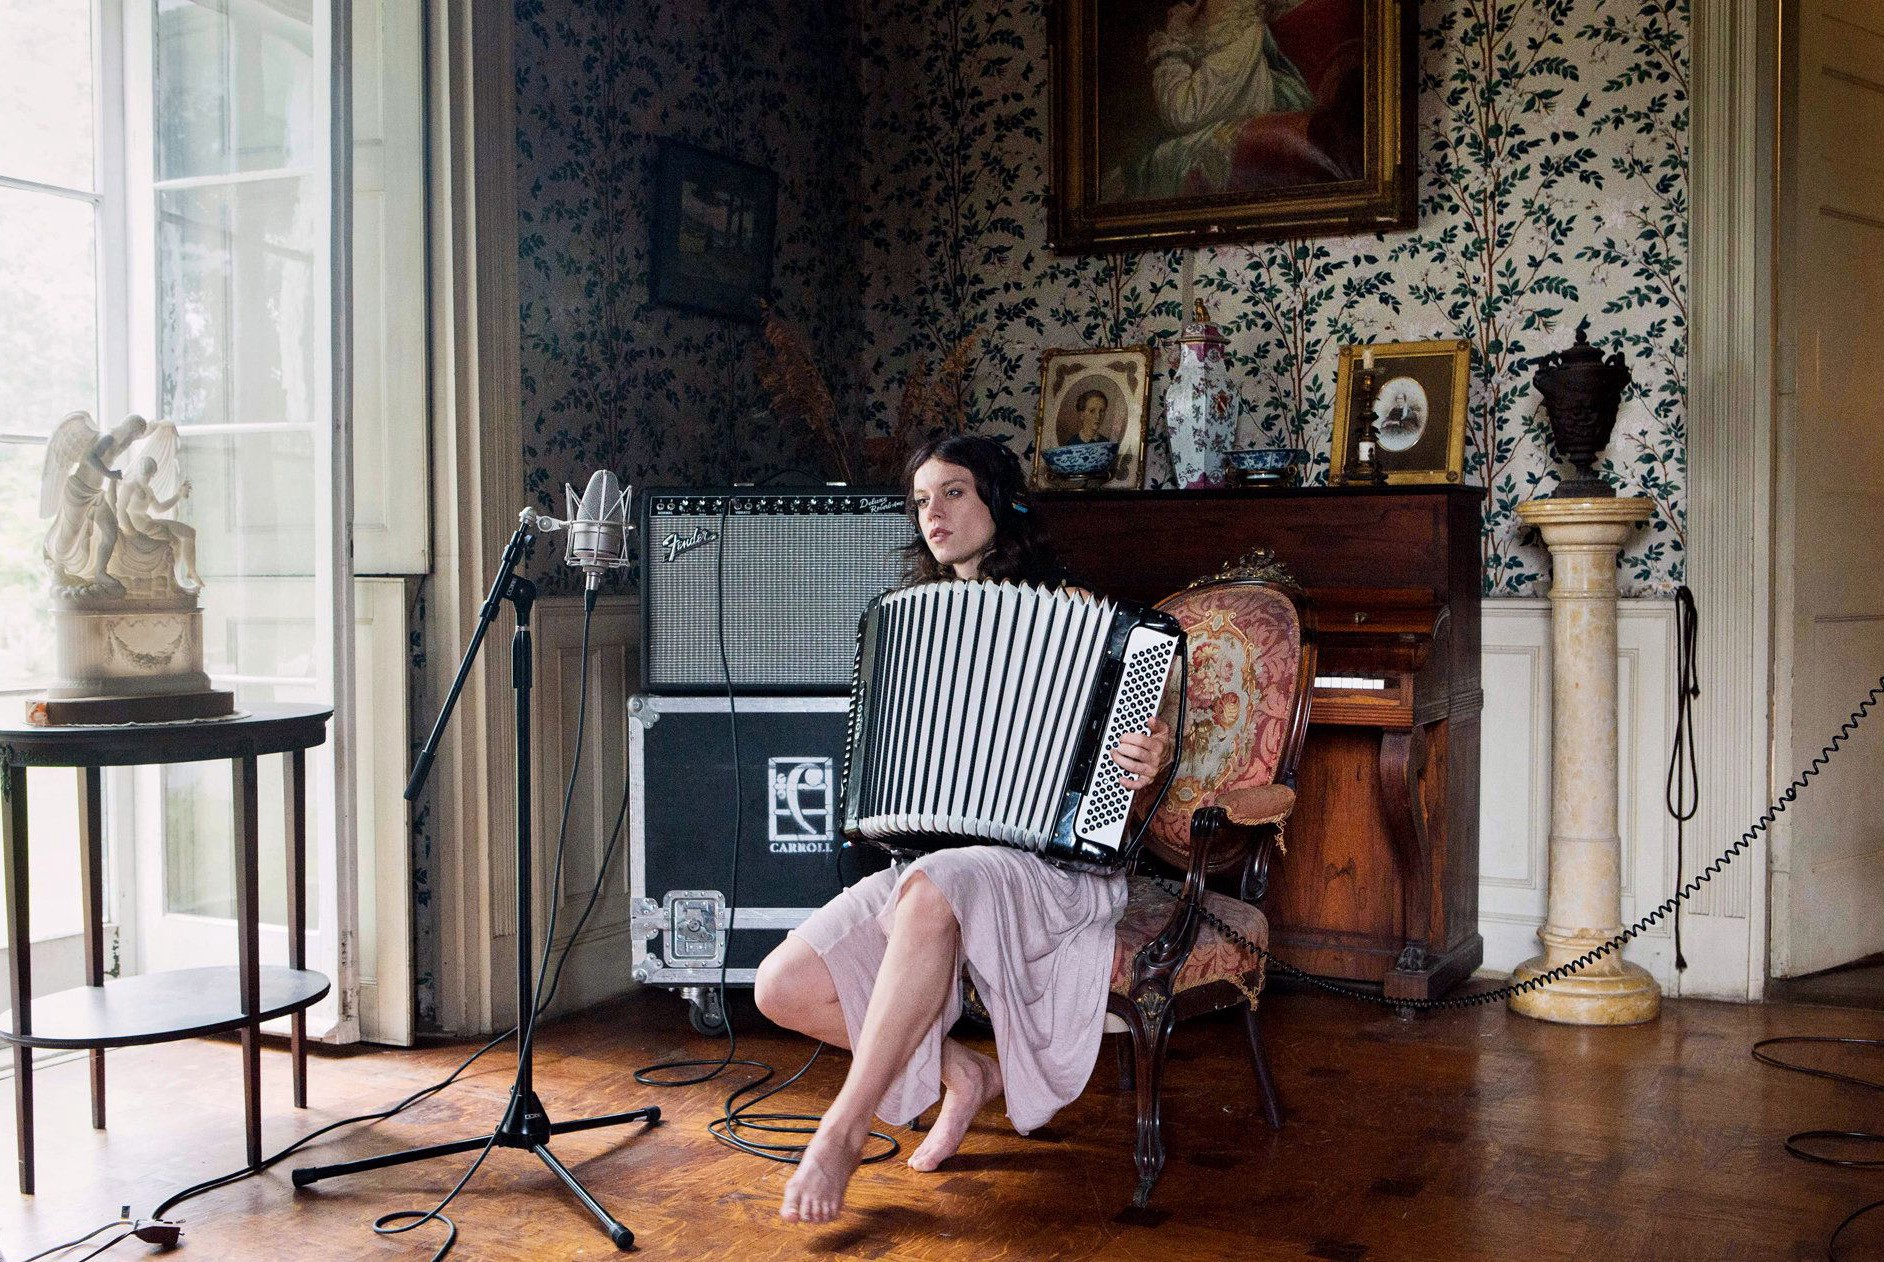 A woman plays the accordion in an ornately decorated room.